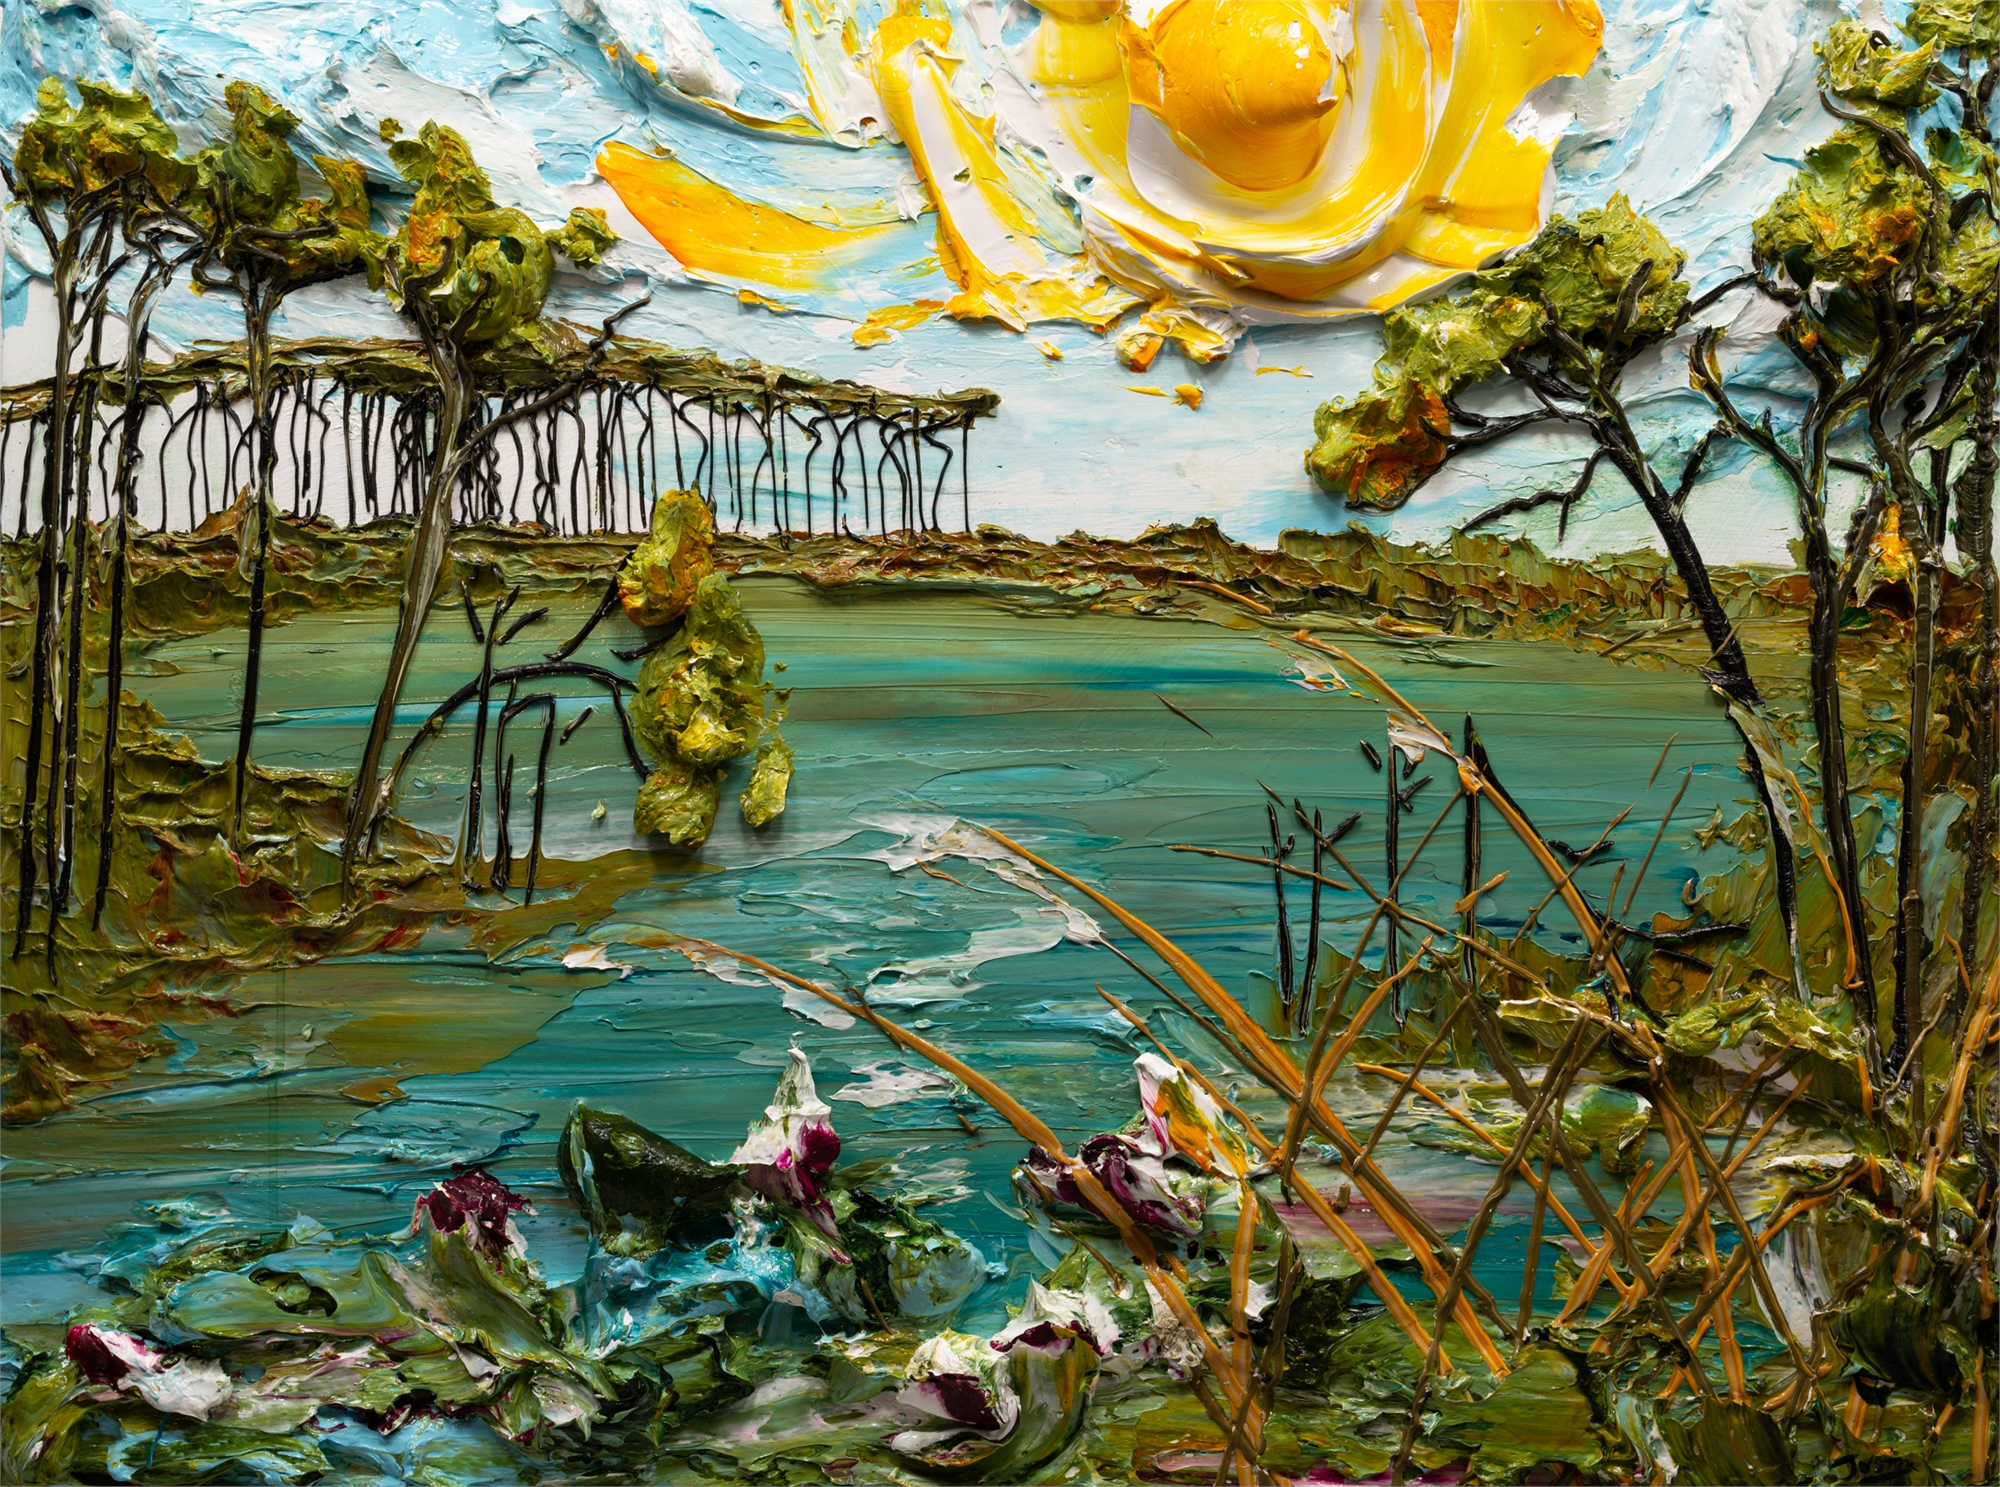 LAKESCAPE-LS-40X30-2019-158 by JUSTIN GAFFREY